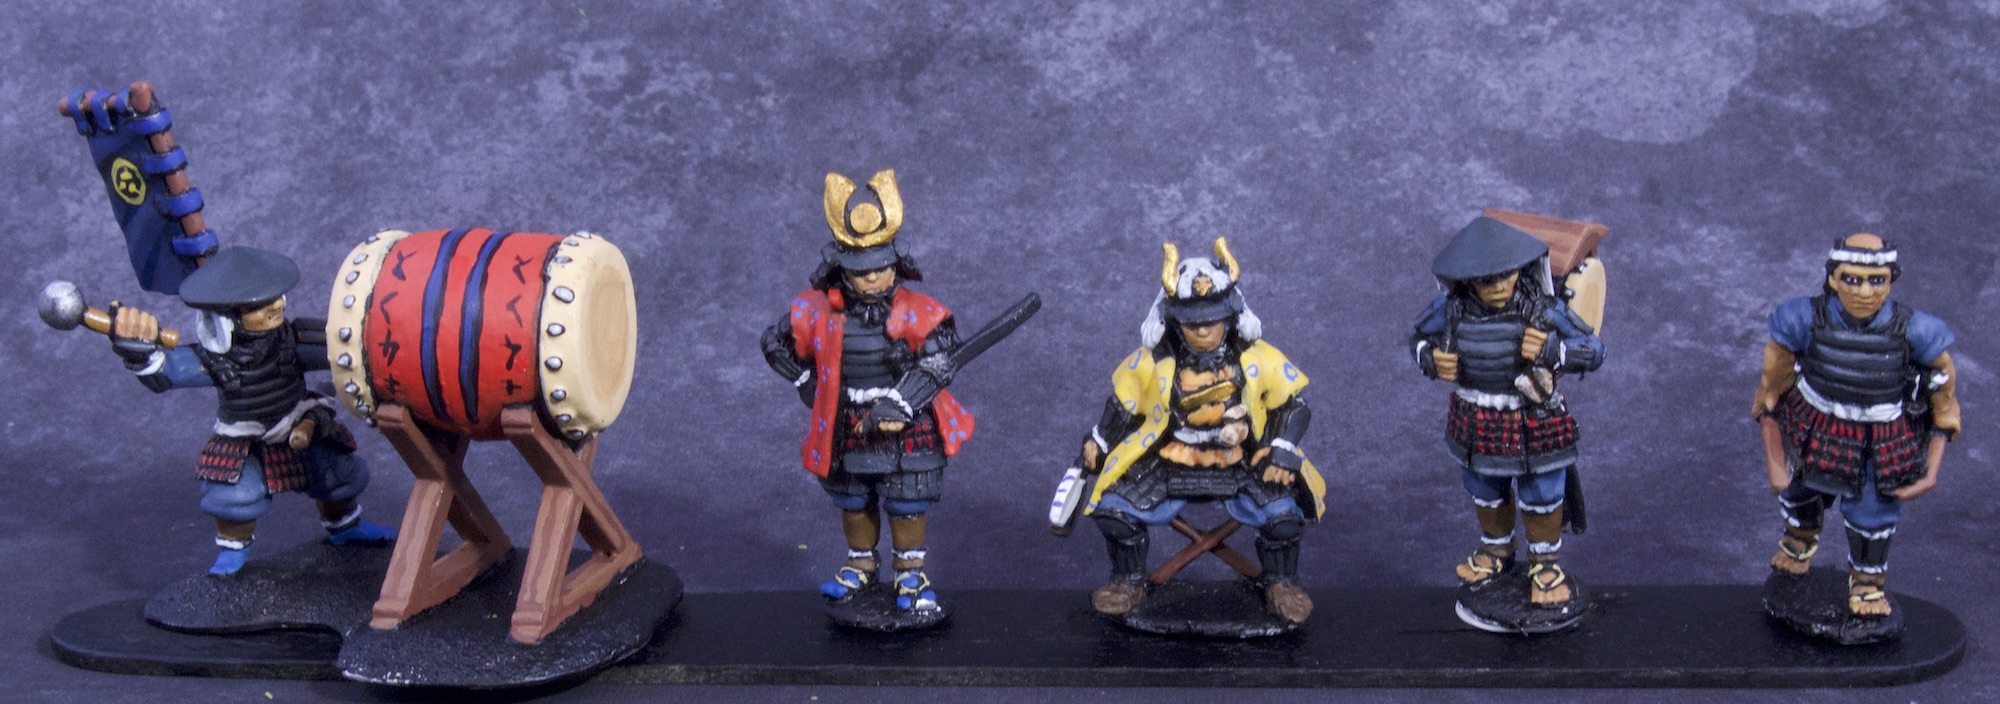 Painted Samurai and Ashigaru Miniatures